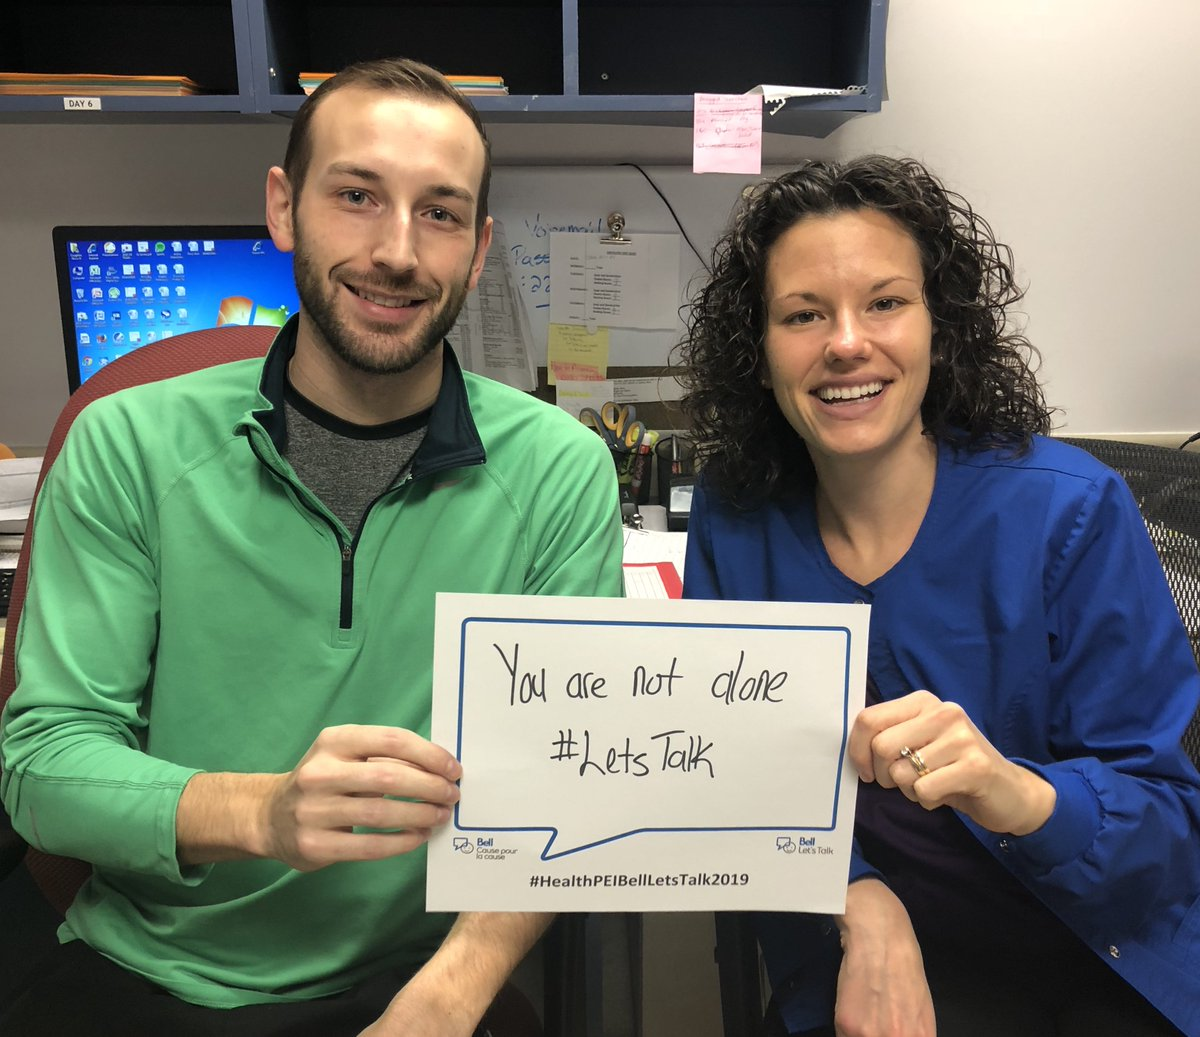 Health PEI staff and health care workers at health facilities across the province share some thoughts for #BellLetsTalk (feel free to tag yourself) http://www.facebook.com/govpe/